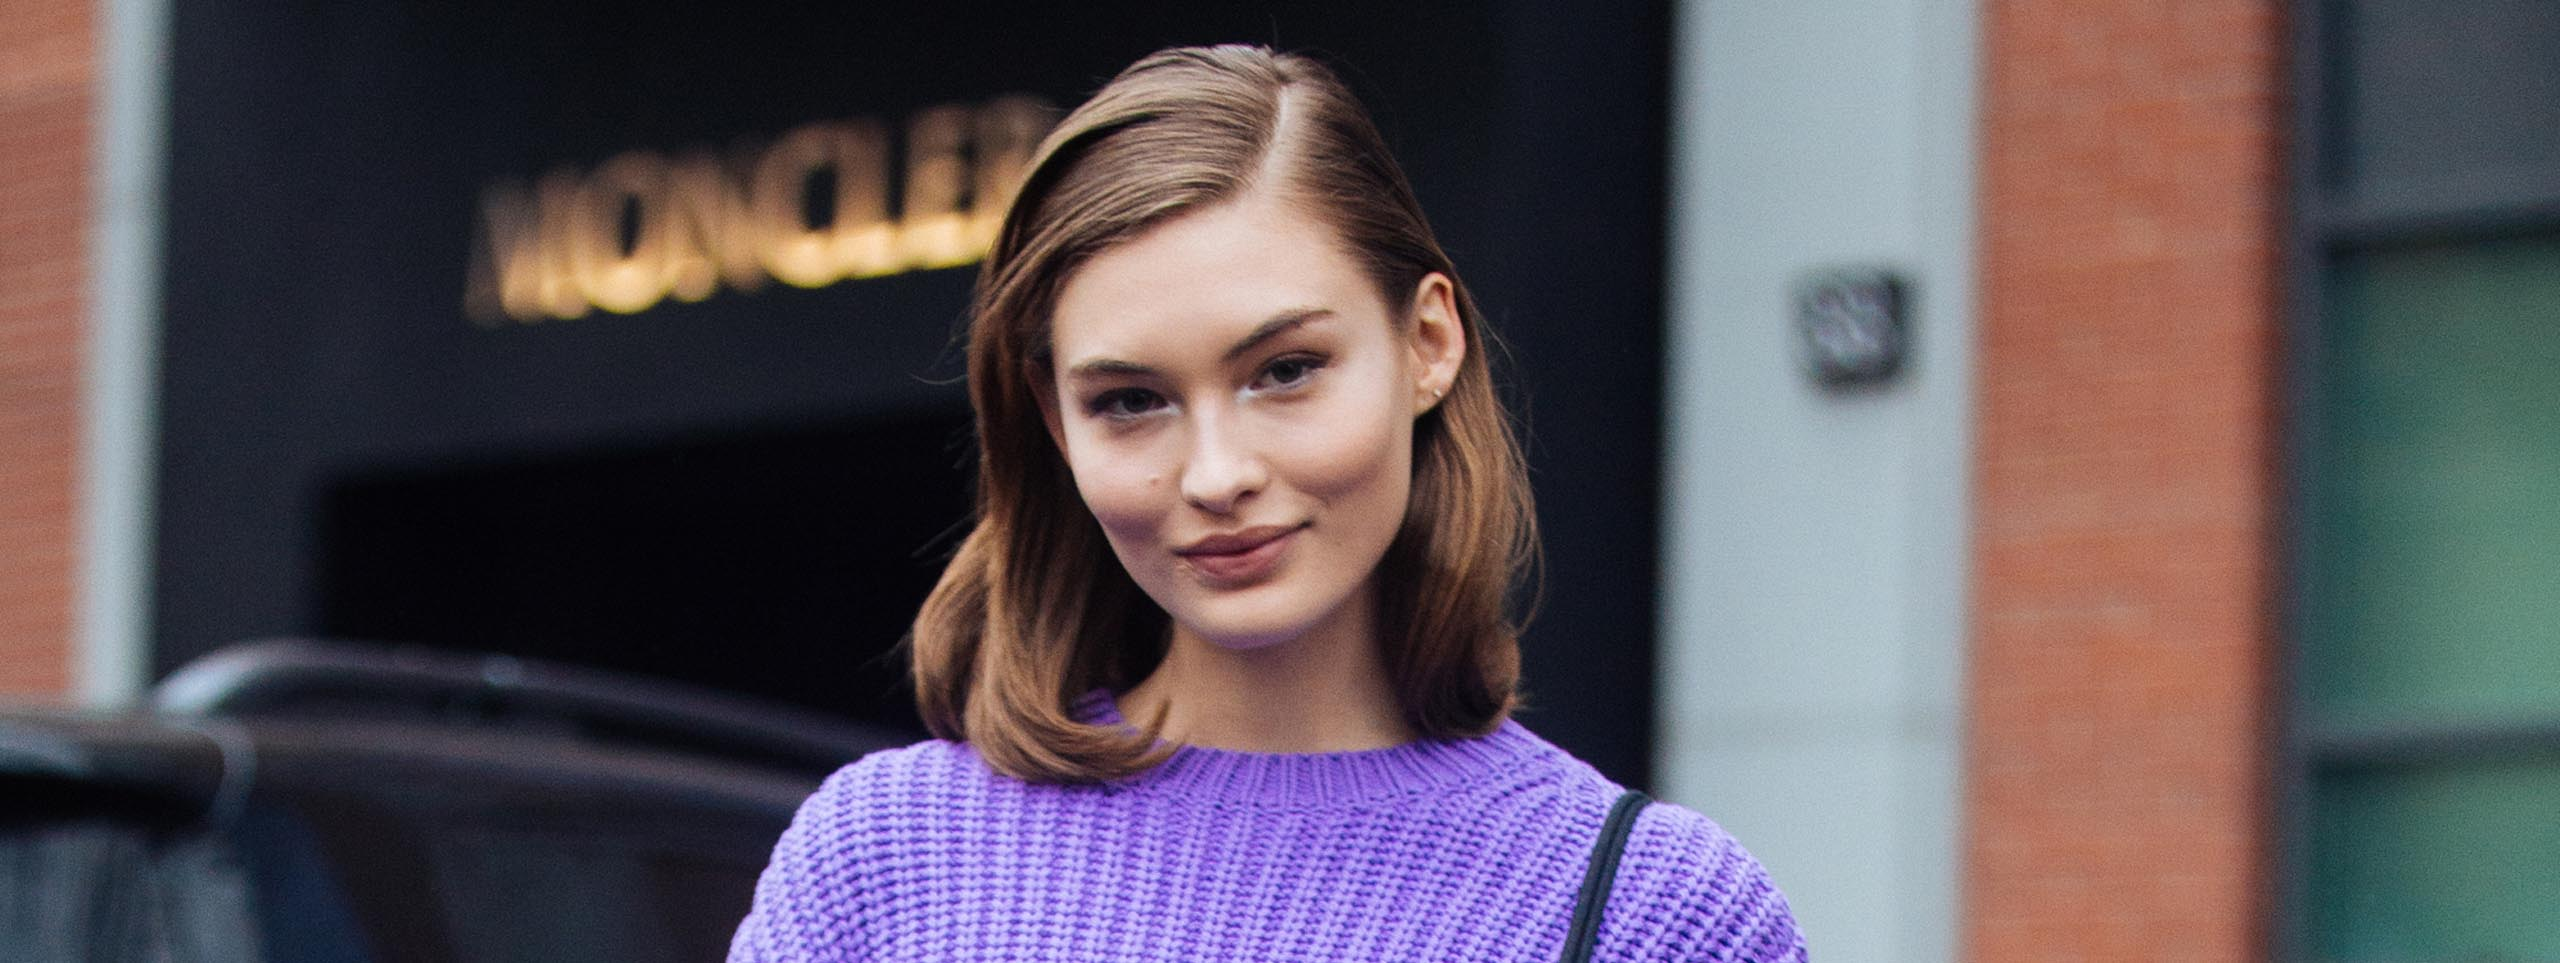 Short And Mid Length Hairstyle Trends For 2019